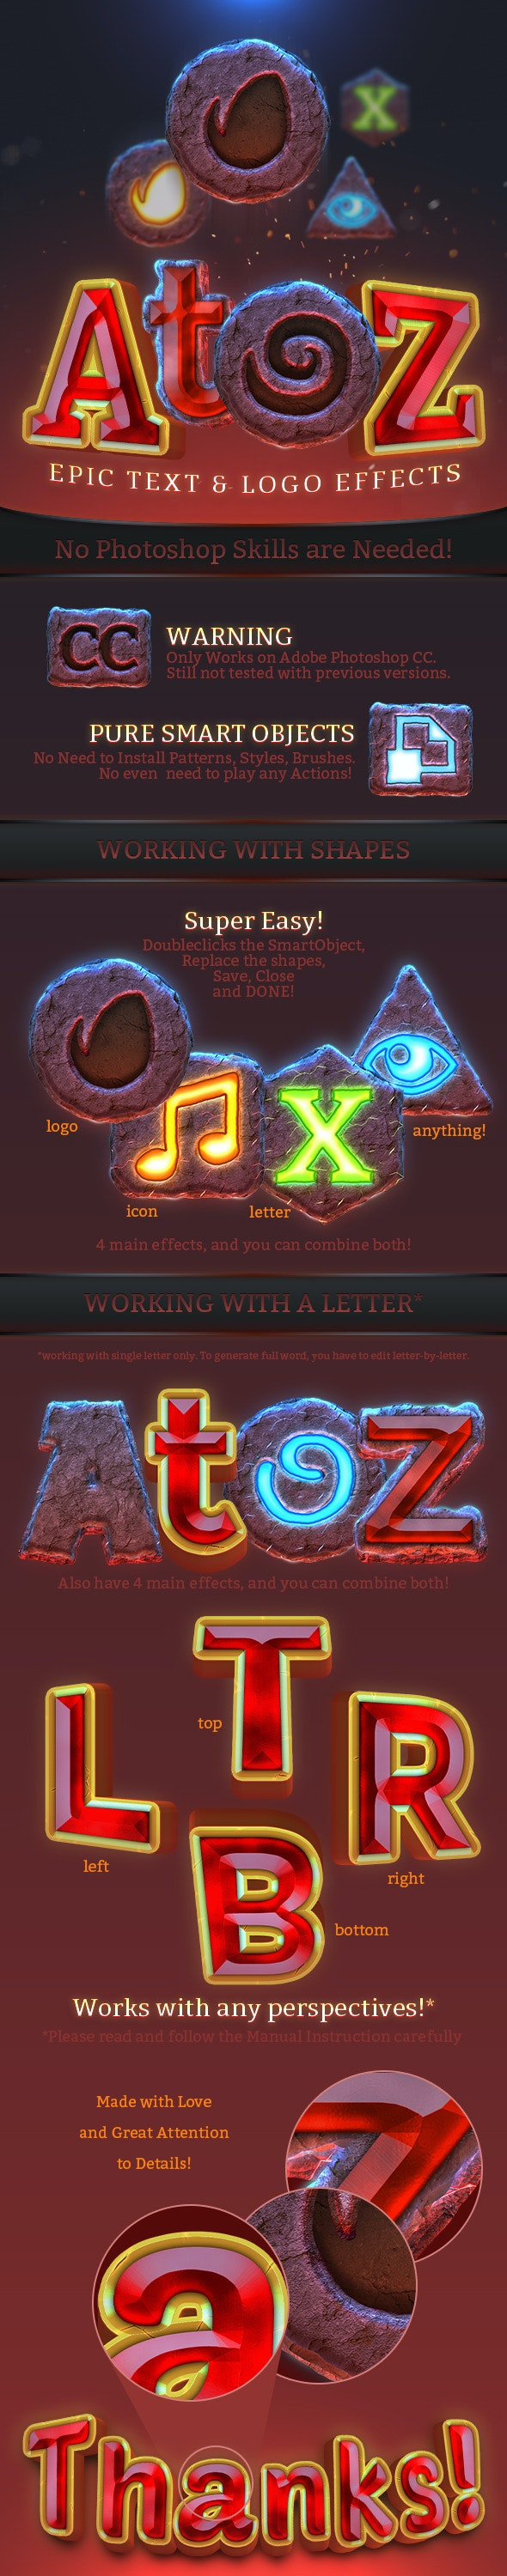 AtoZ: Epic Text & Logo Effect - Text Effects Styles